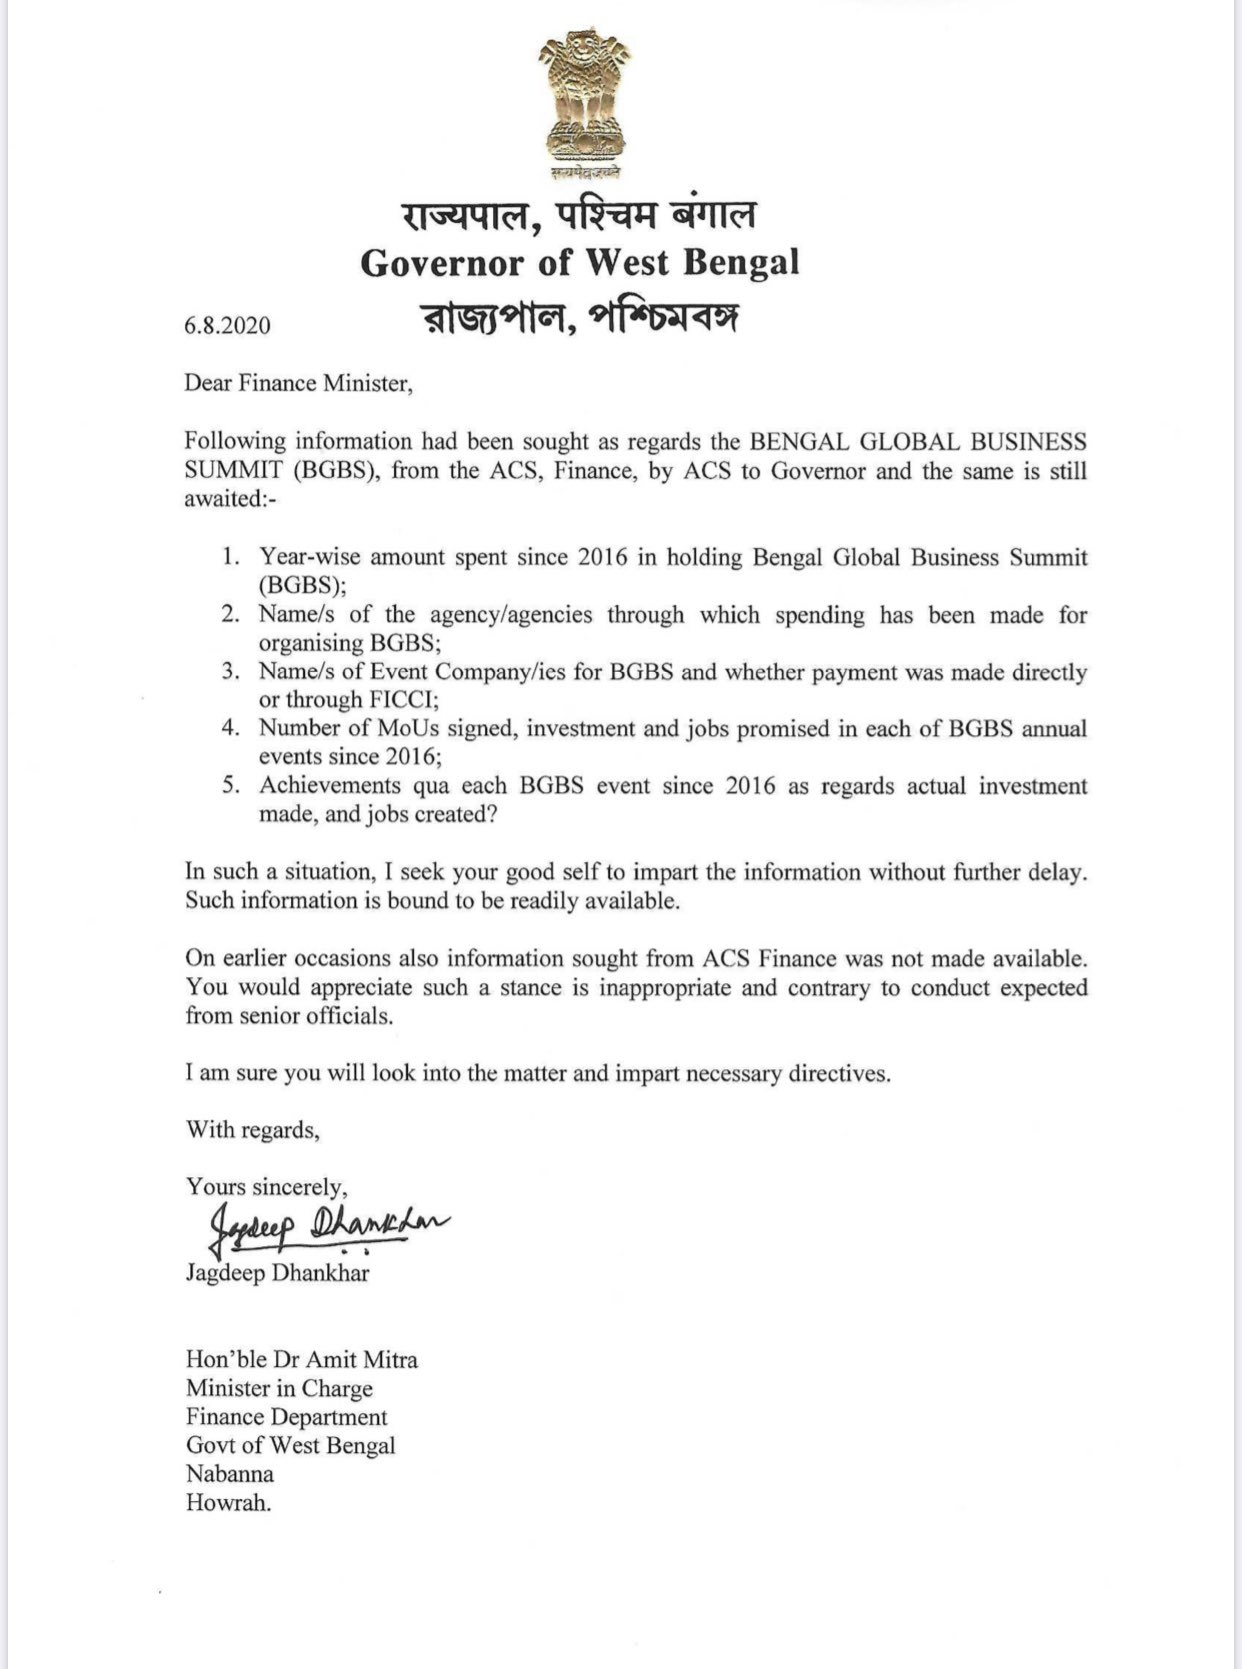 Governor letter to Amit Mitra